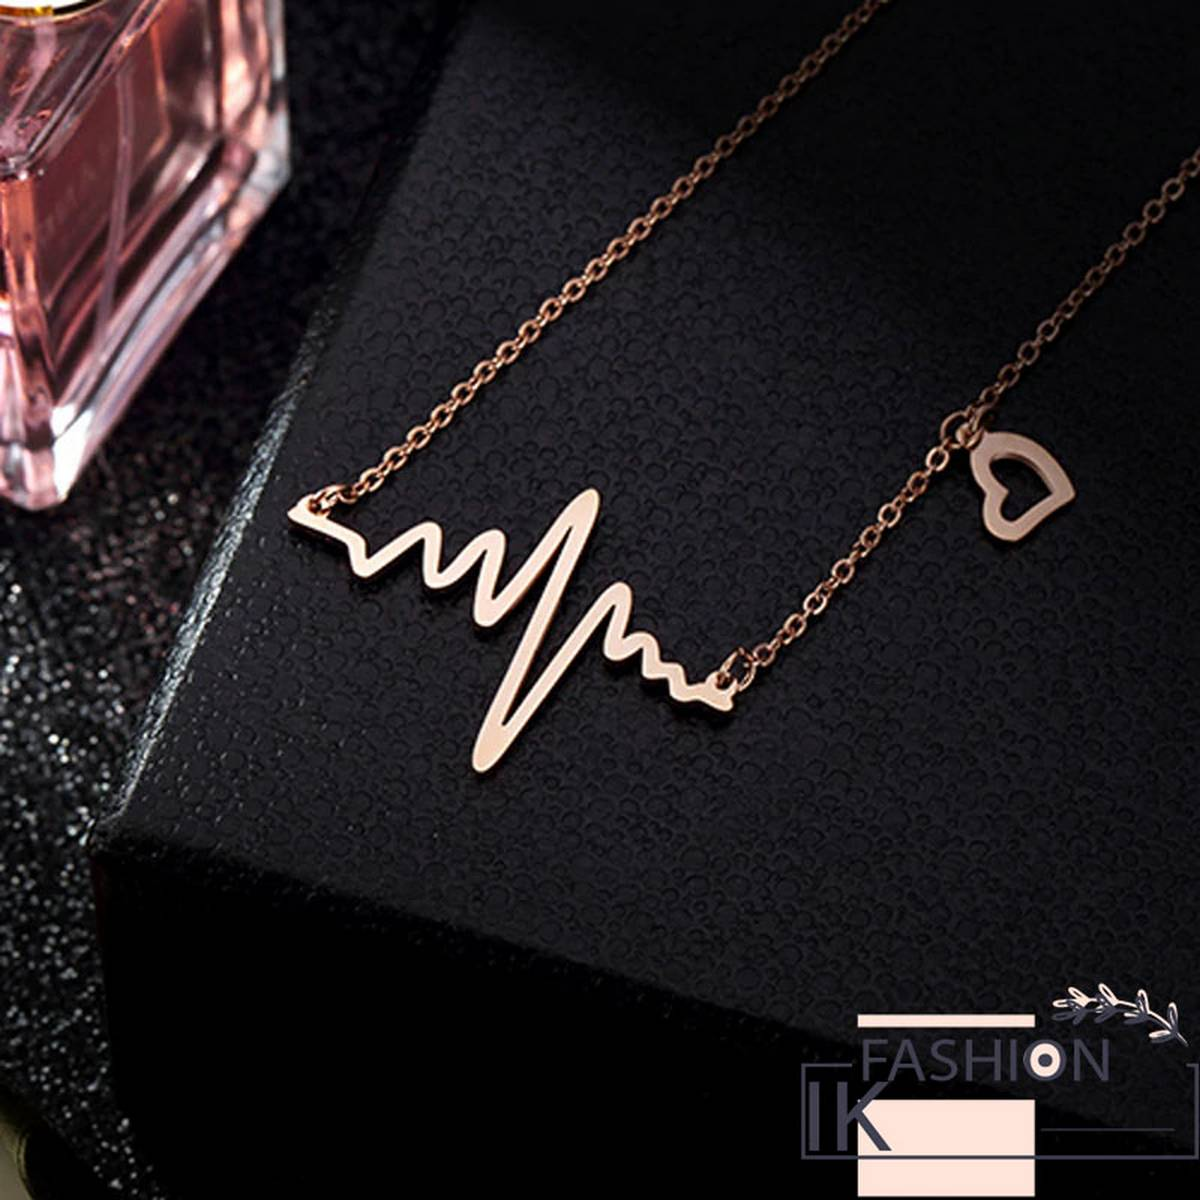 IK Fashion - Simple Wave Heart Necklace Chic Ecg Pulse Charm Pendant Necklace Lightning Women Vintage Fashion Jewelry Accessories Gold Color